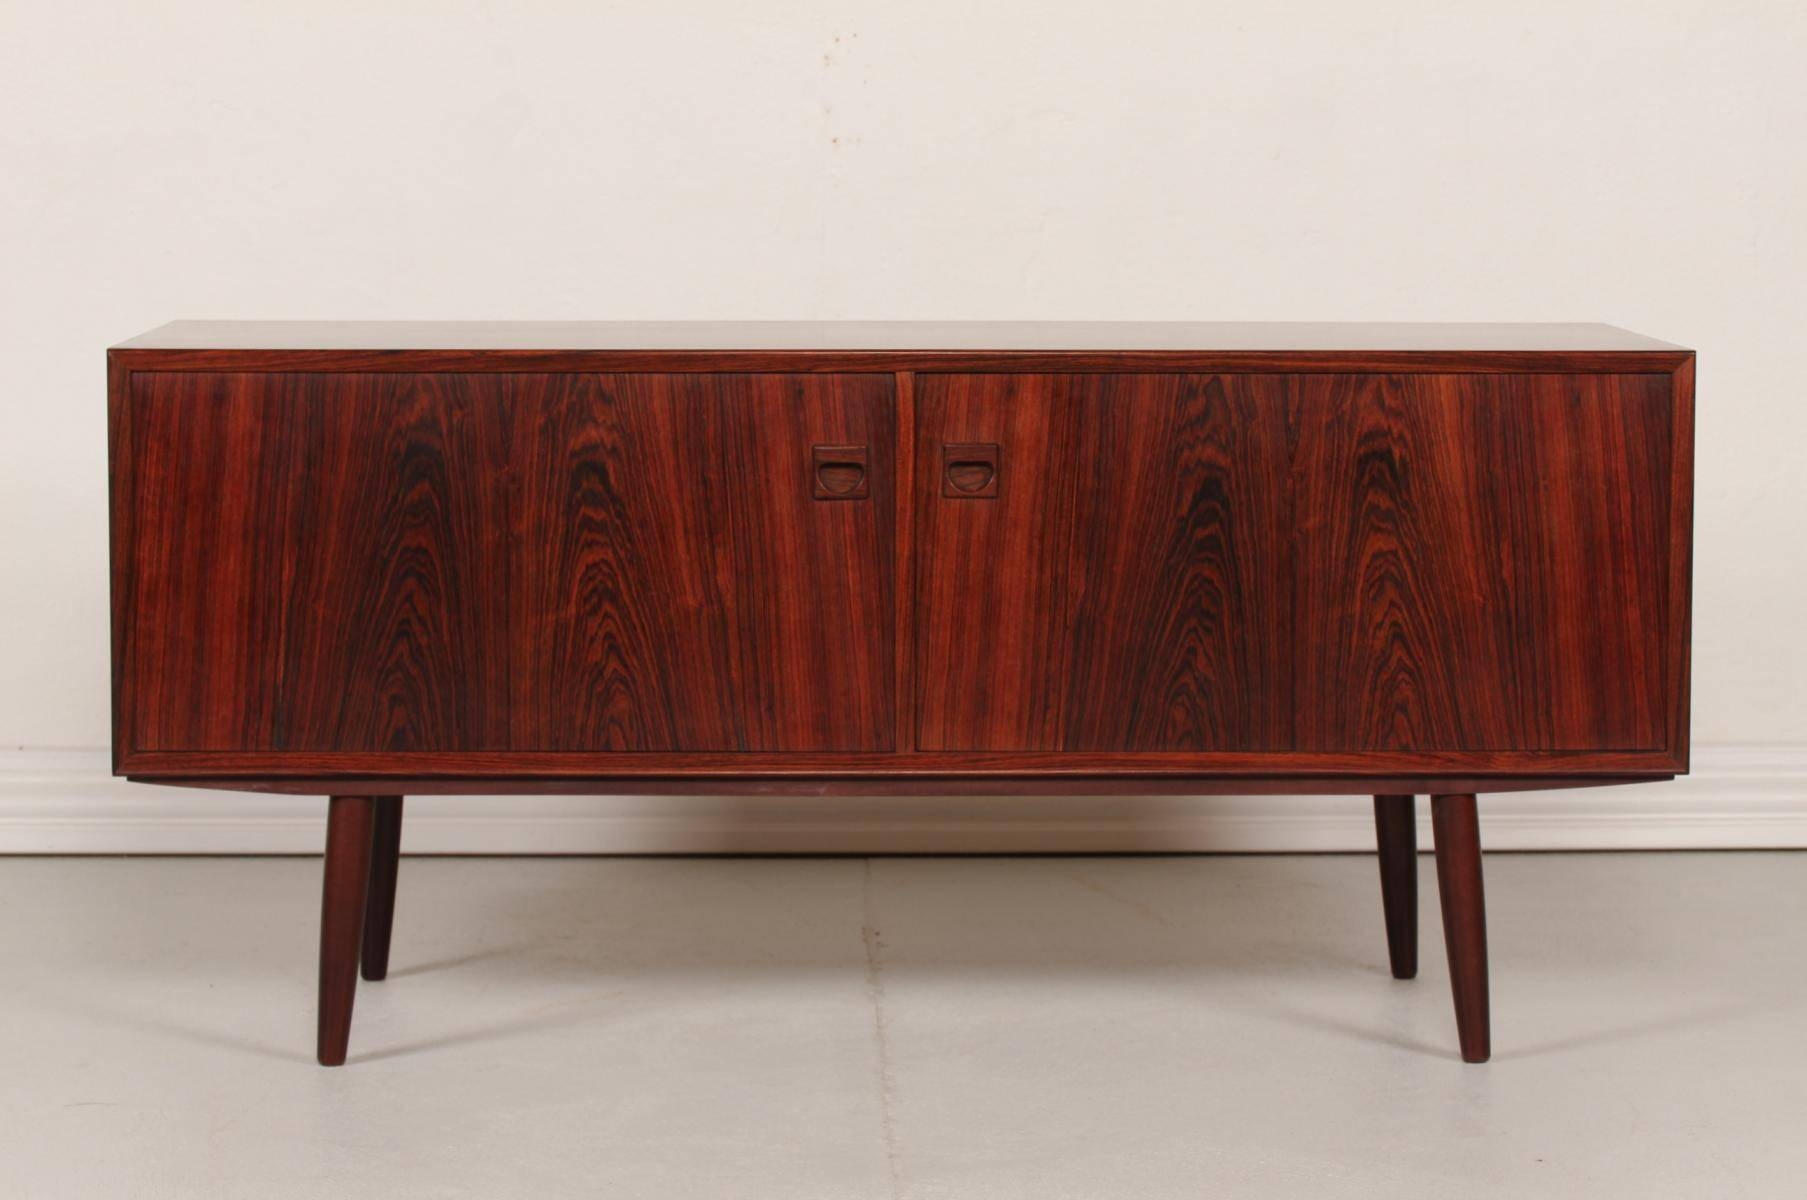 Vintage Danish Low Rosewood Sideboard, 1970S For Sale At Pamono intended for Low Sideboards (Image 27 of 30)